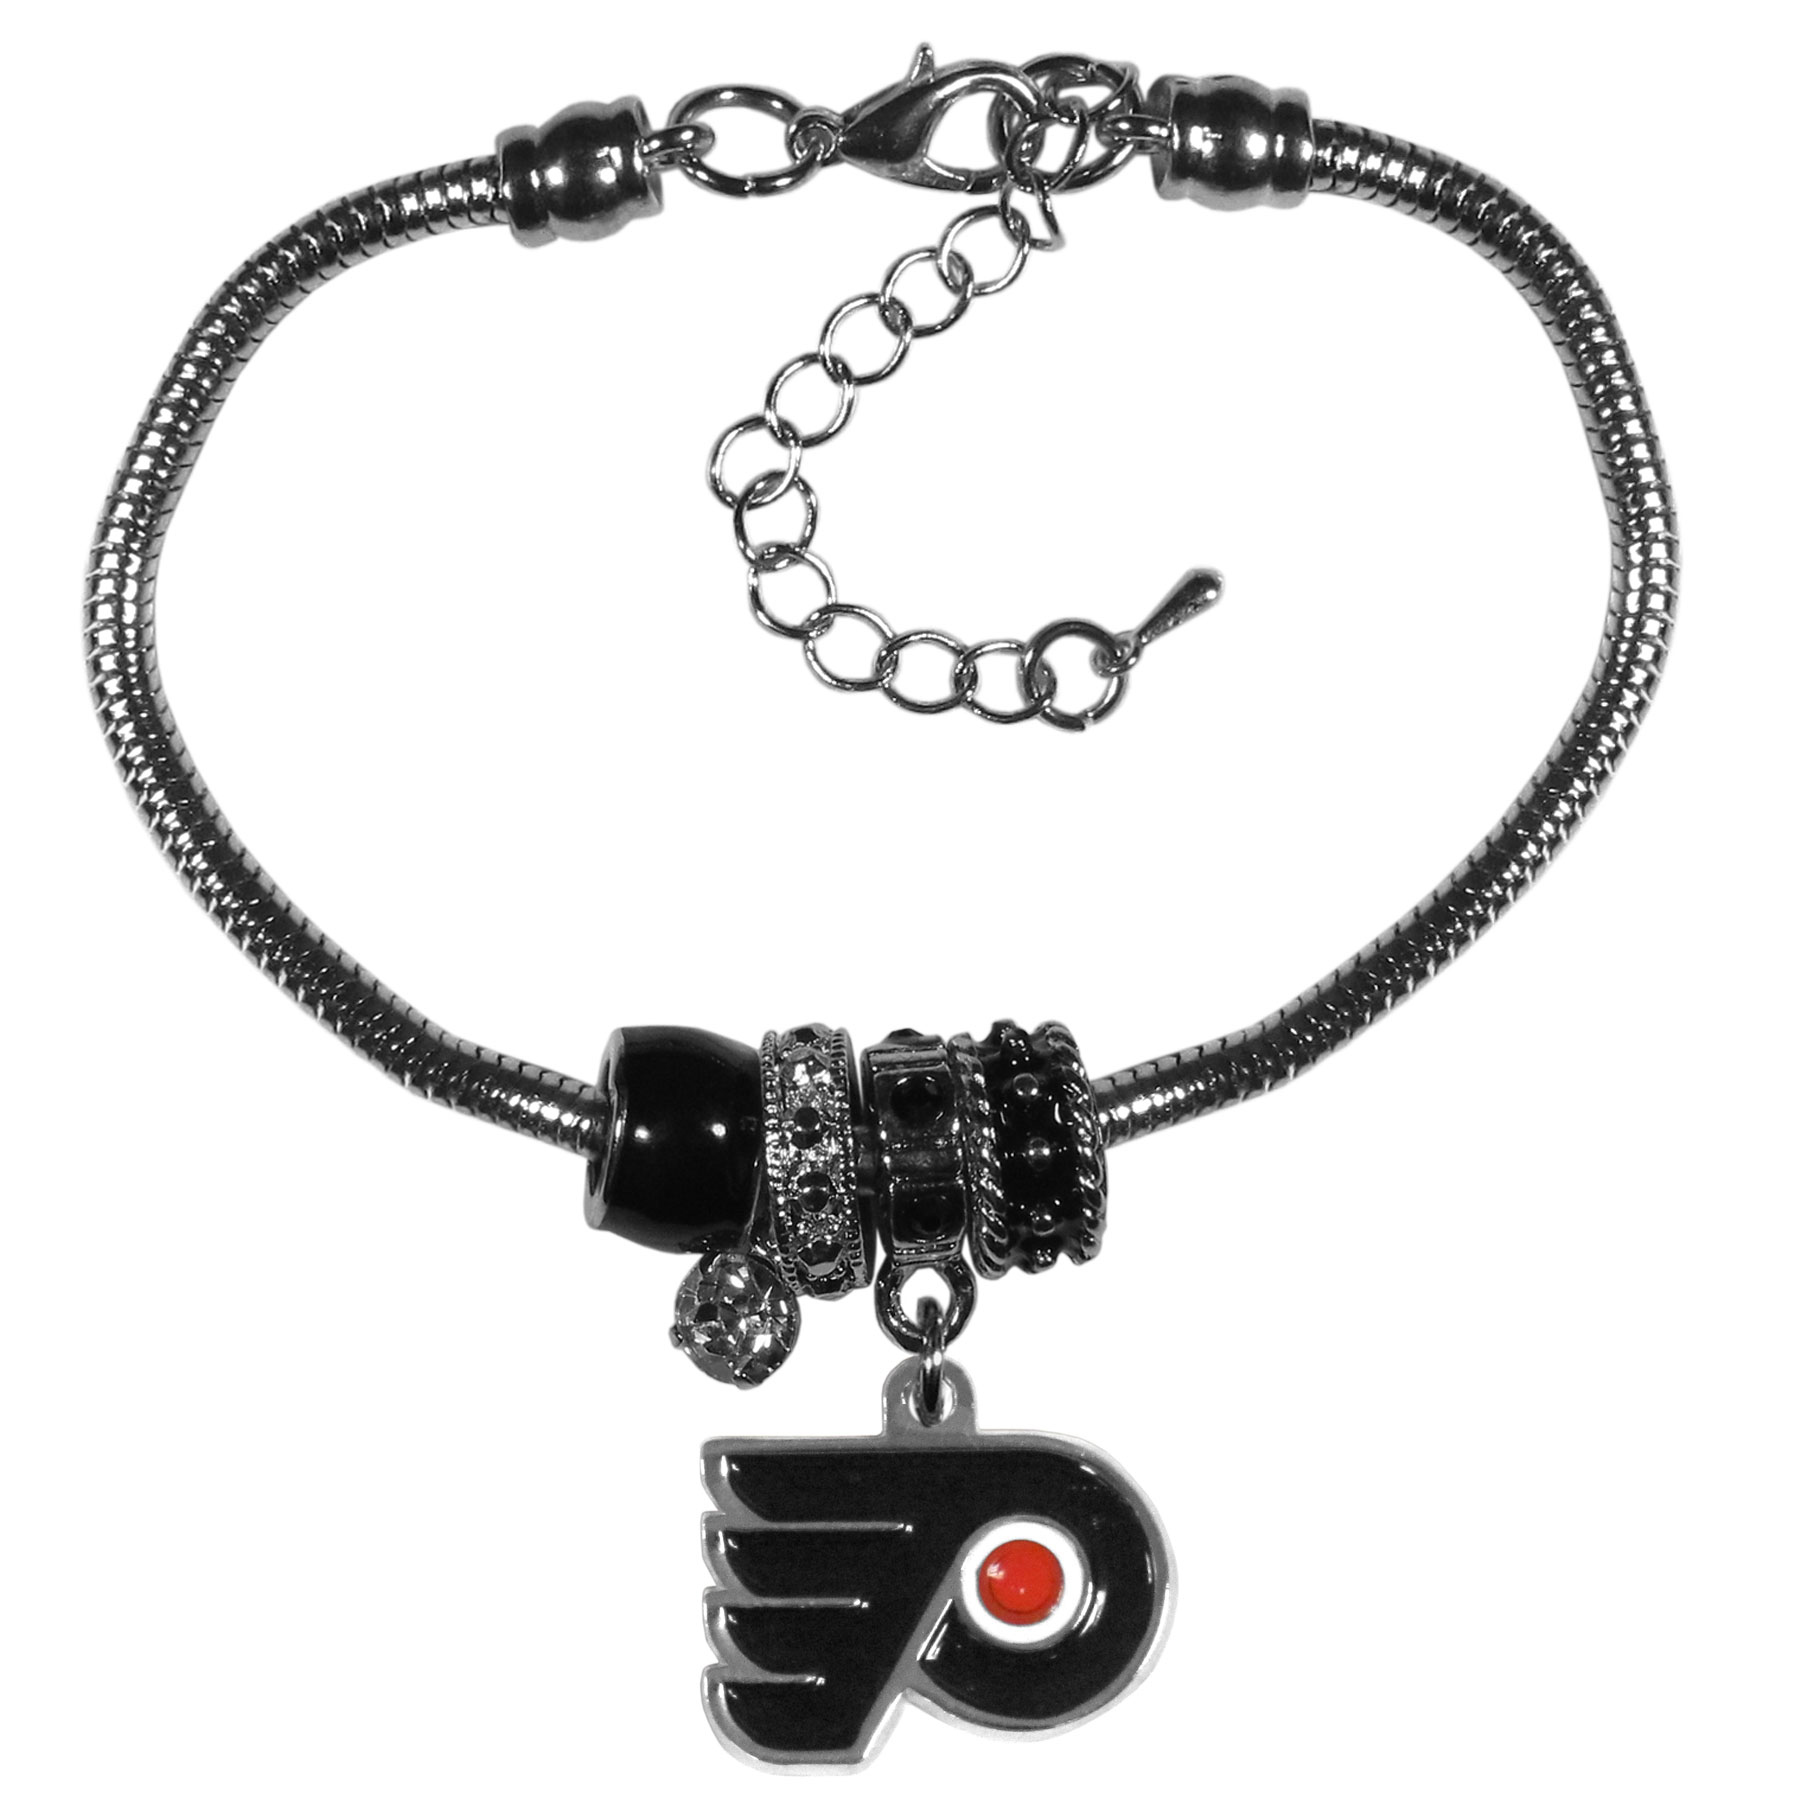 Philadelphia Flyers® Euro Bead Bracelet - We have combined the wildly popular Euro style beads with your favorite team to create our  Philadelphia Flyers® bead bracelet. The 7.5 inch snake chain with 2 inch extender features 4 Euro beads with enameled team colors and rhinestone accents with a high polish, nickel free charm and rhinestone charm. Perfect way to show off your team pride.